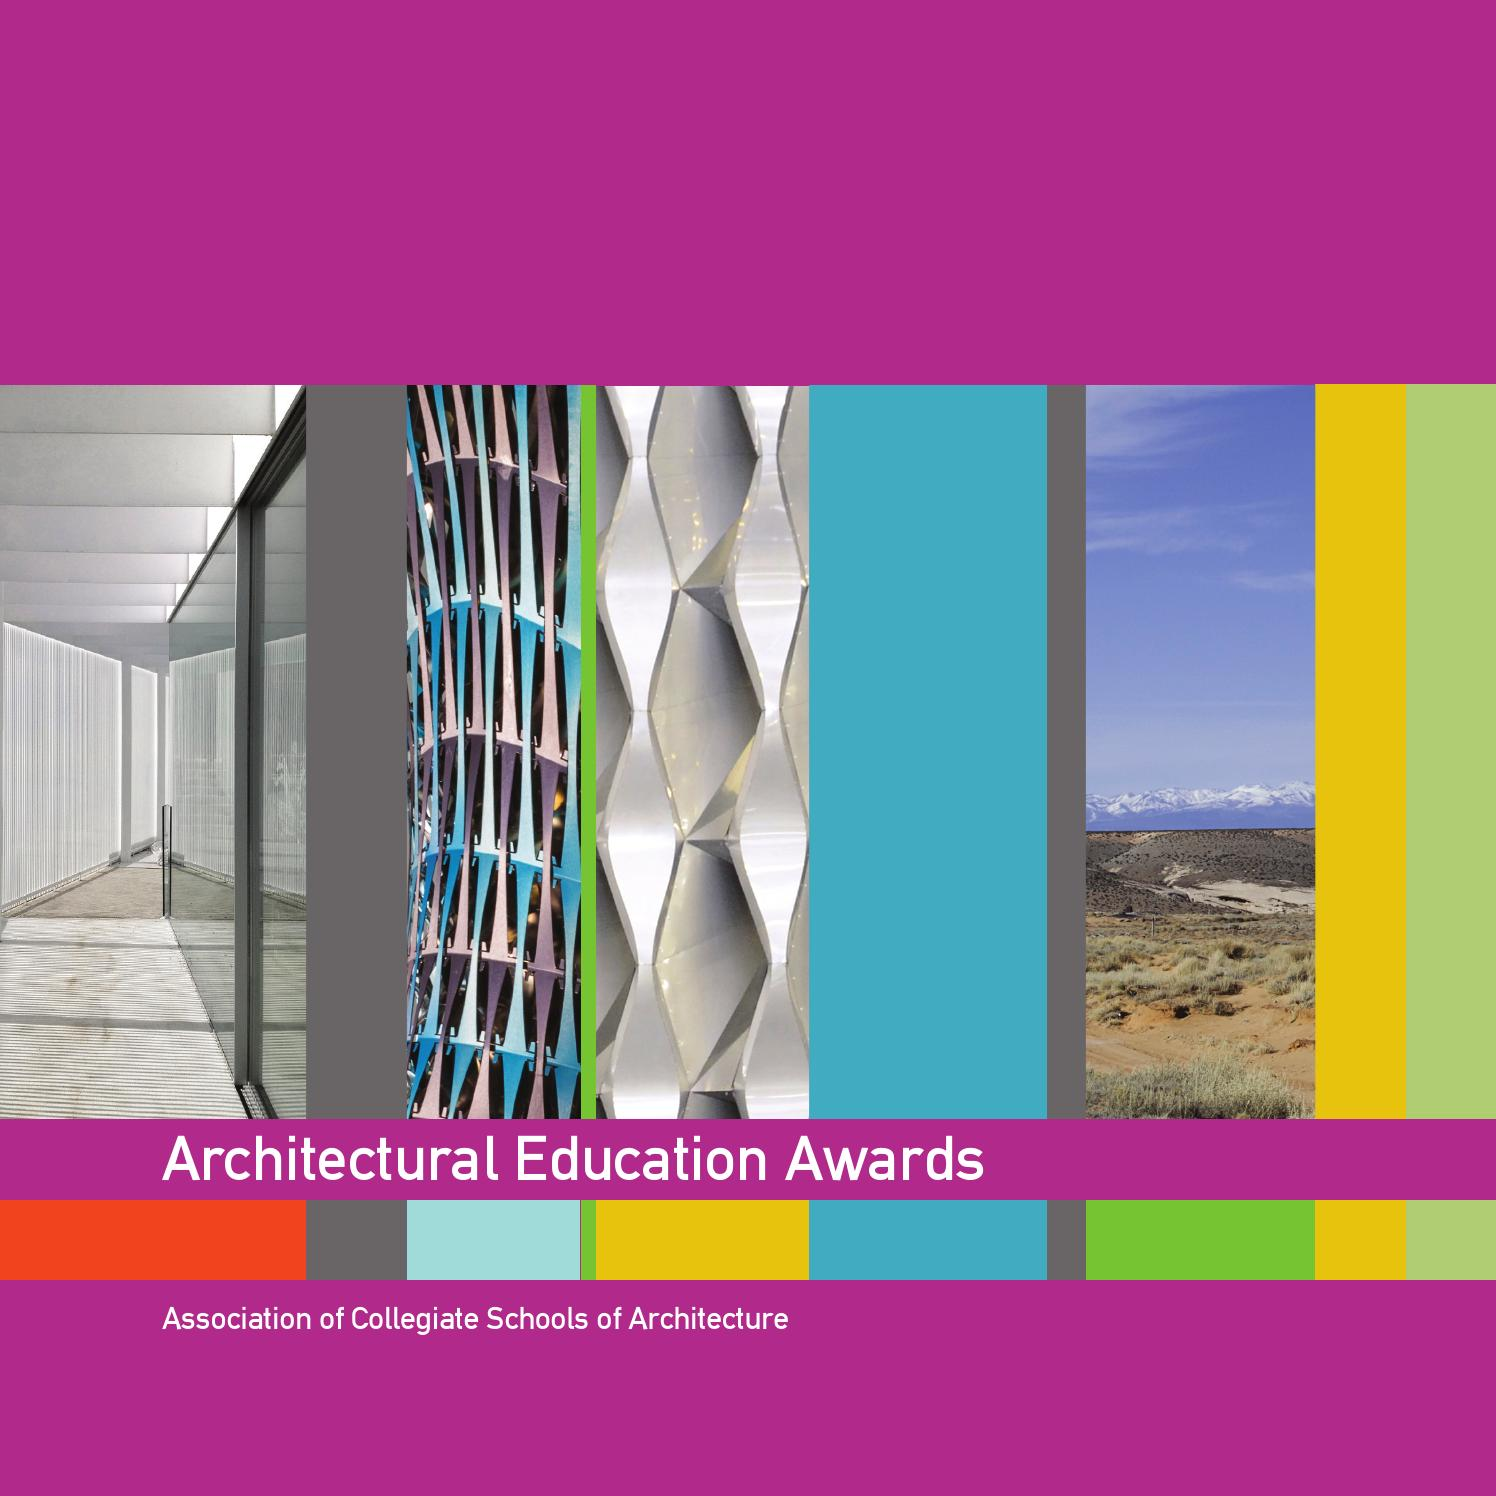 2014 2015 Architectural Education Awards By Association Of Collegiate Schools Architecture